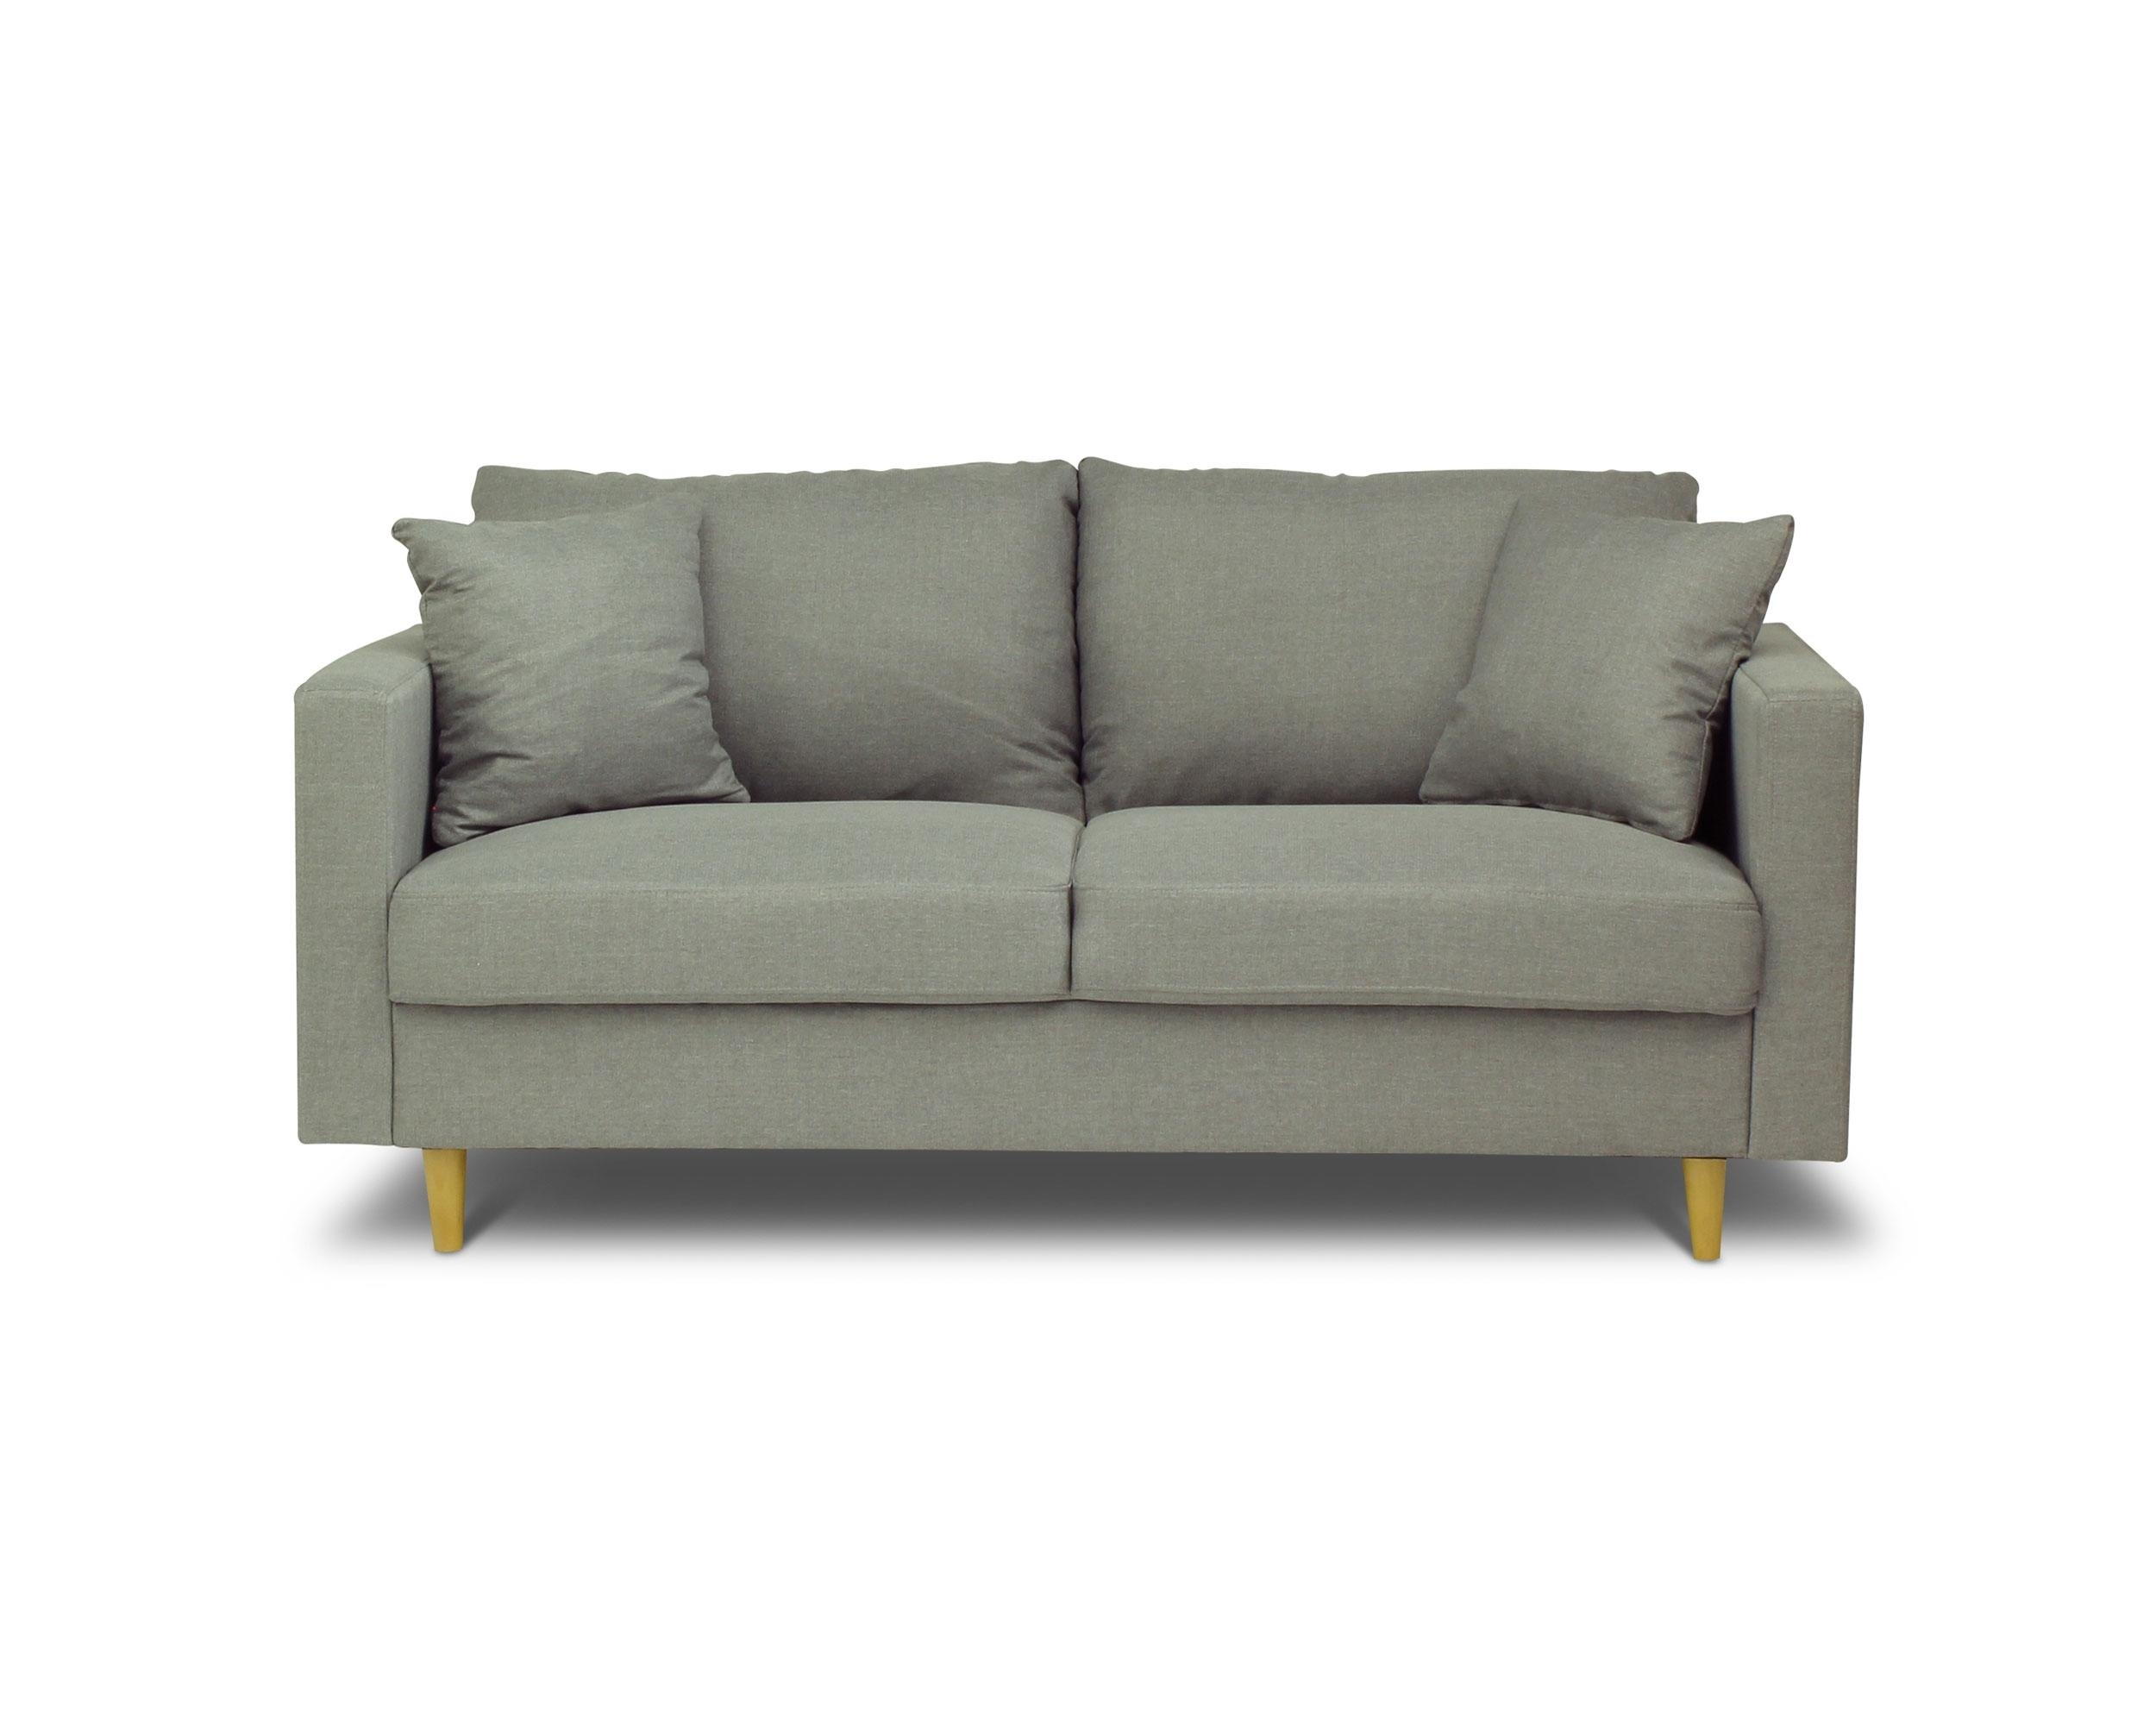 Copenhagen – 2 Seat Sofa | Loungelovers Pertaining To 2 Seater Sofas (View 6 of 20)